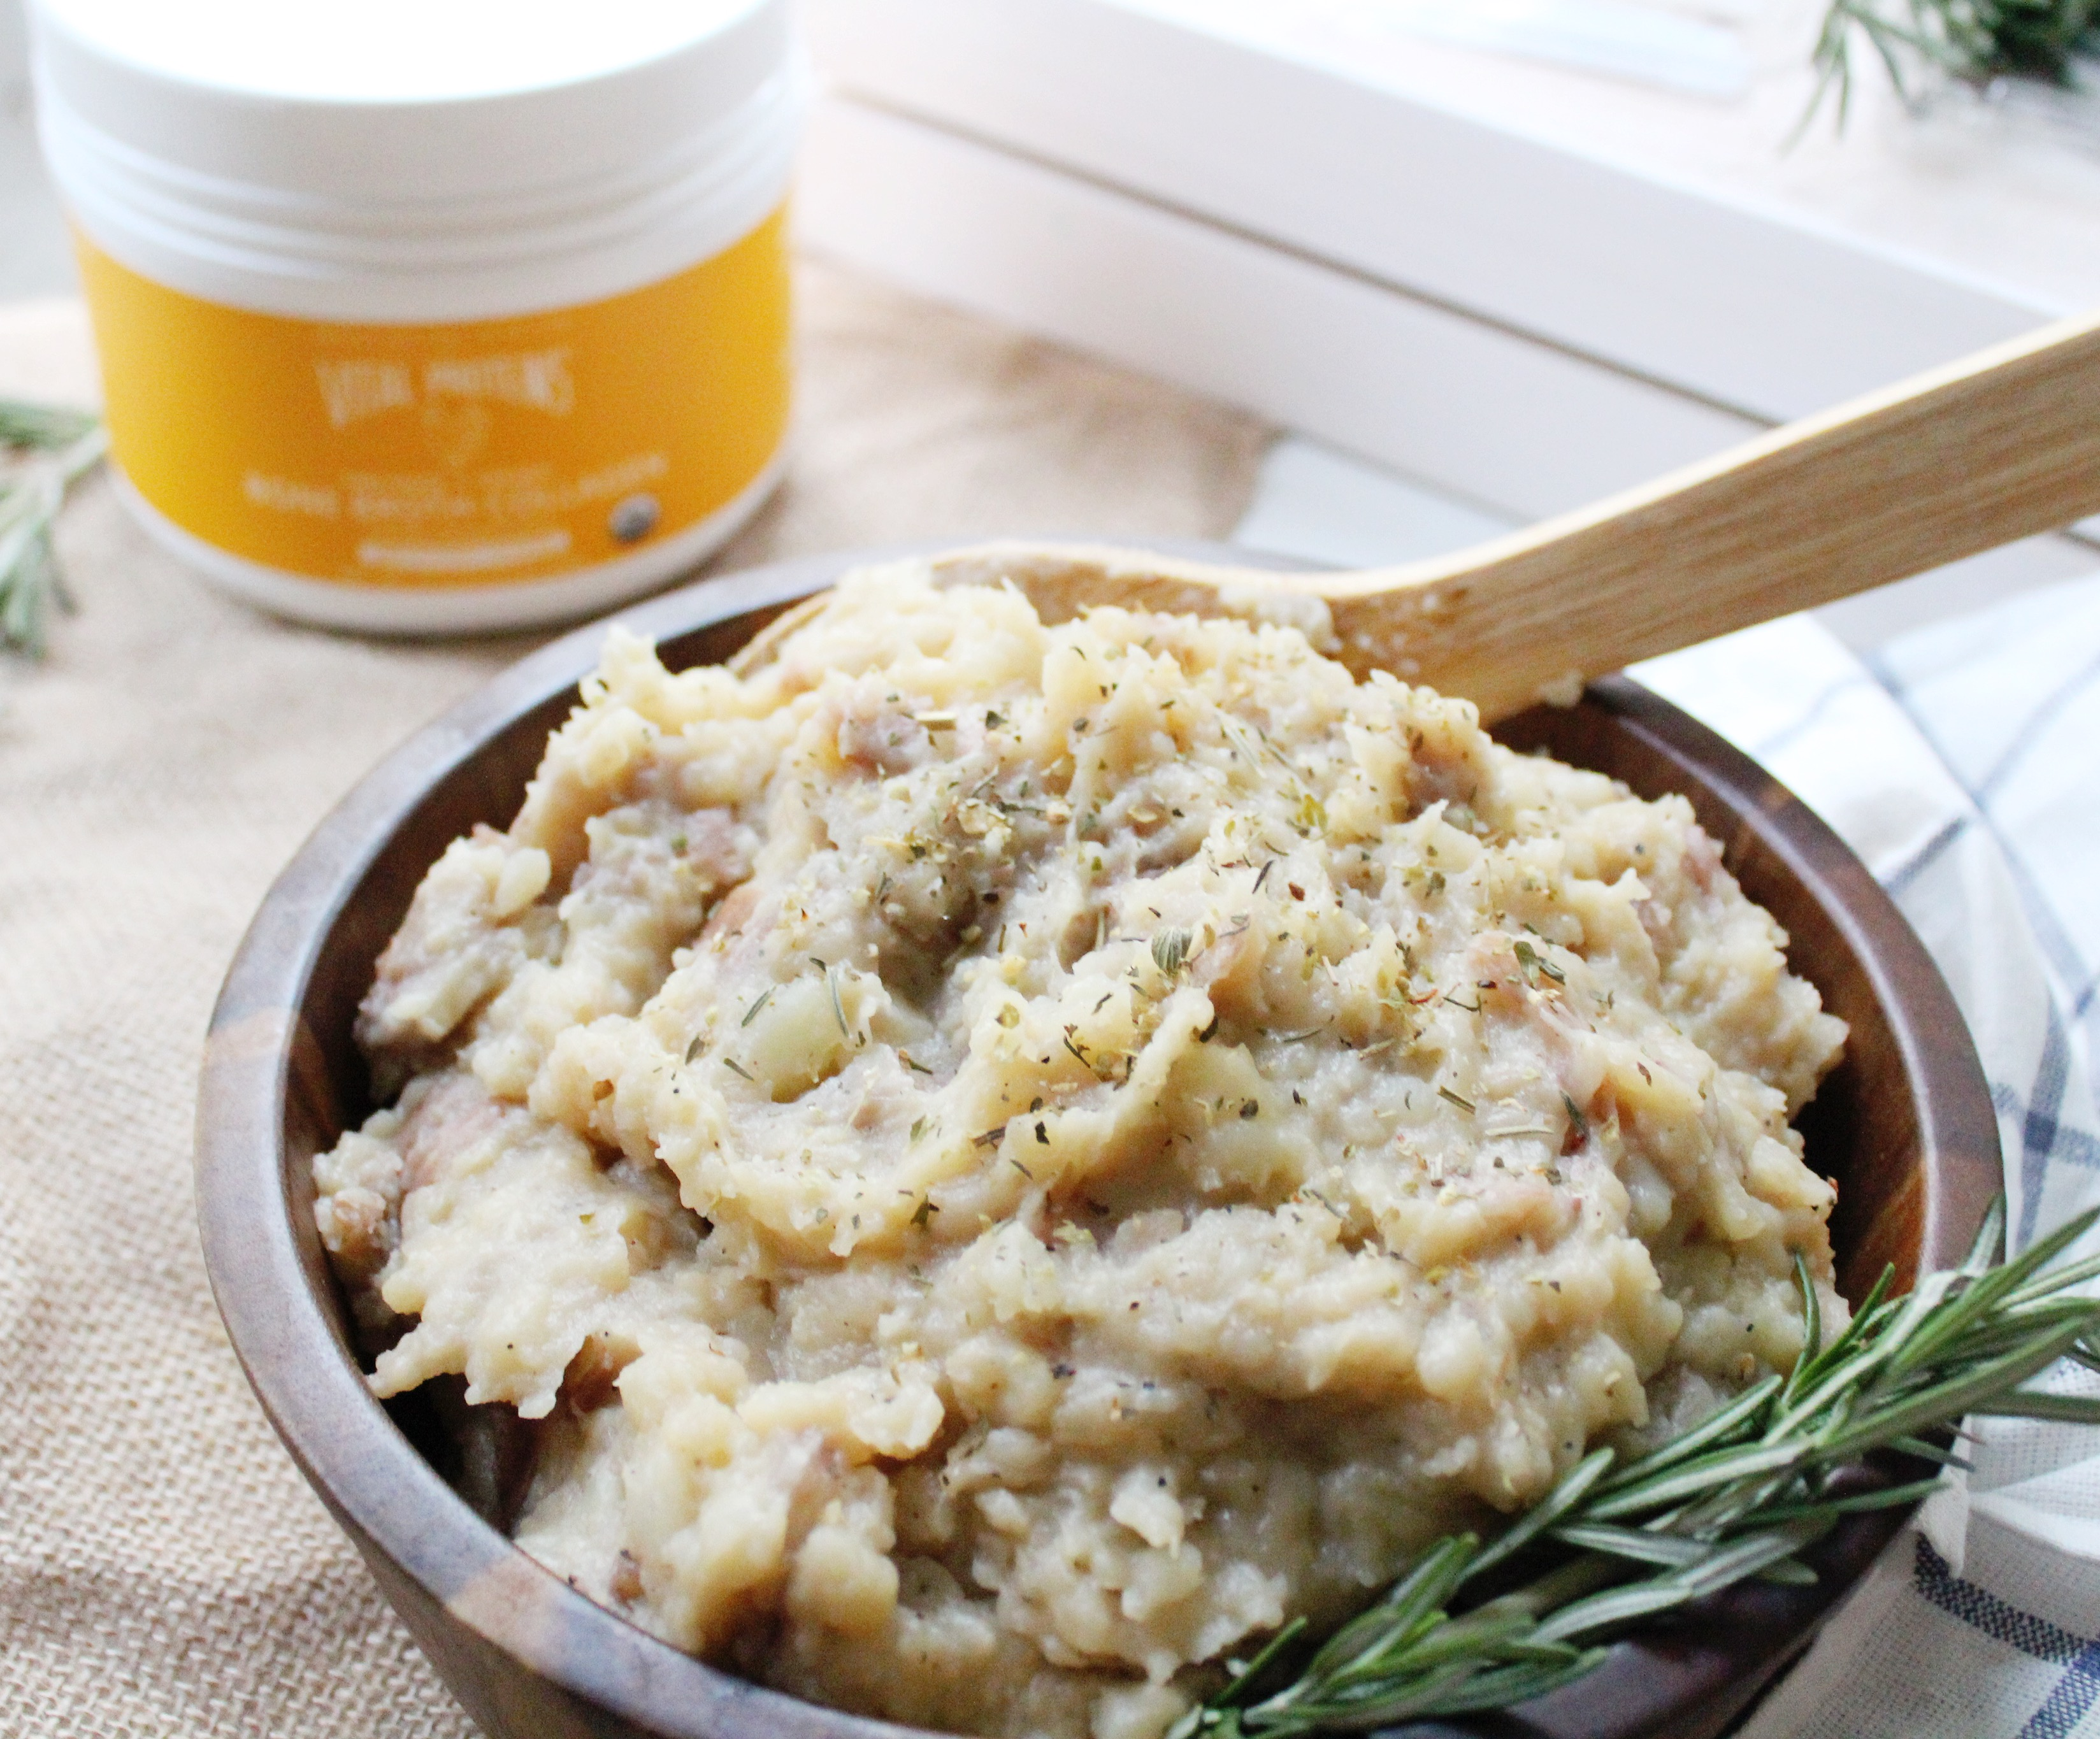 Best Ever Chunky Mashed Potatoes: Whole30 6 Minute Instant Pot & Stovetop Instructions